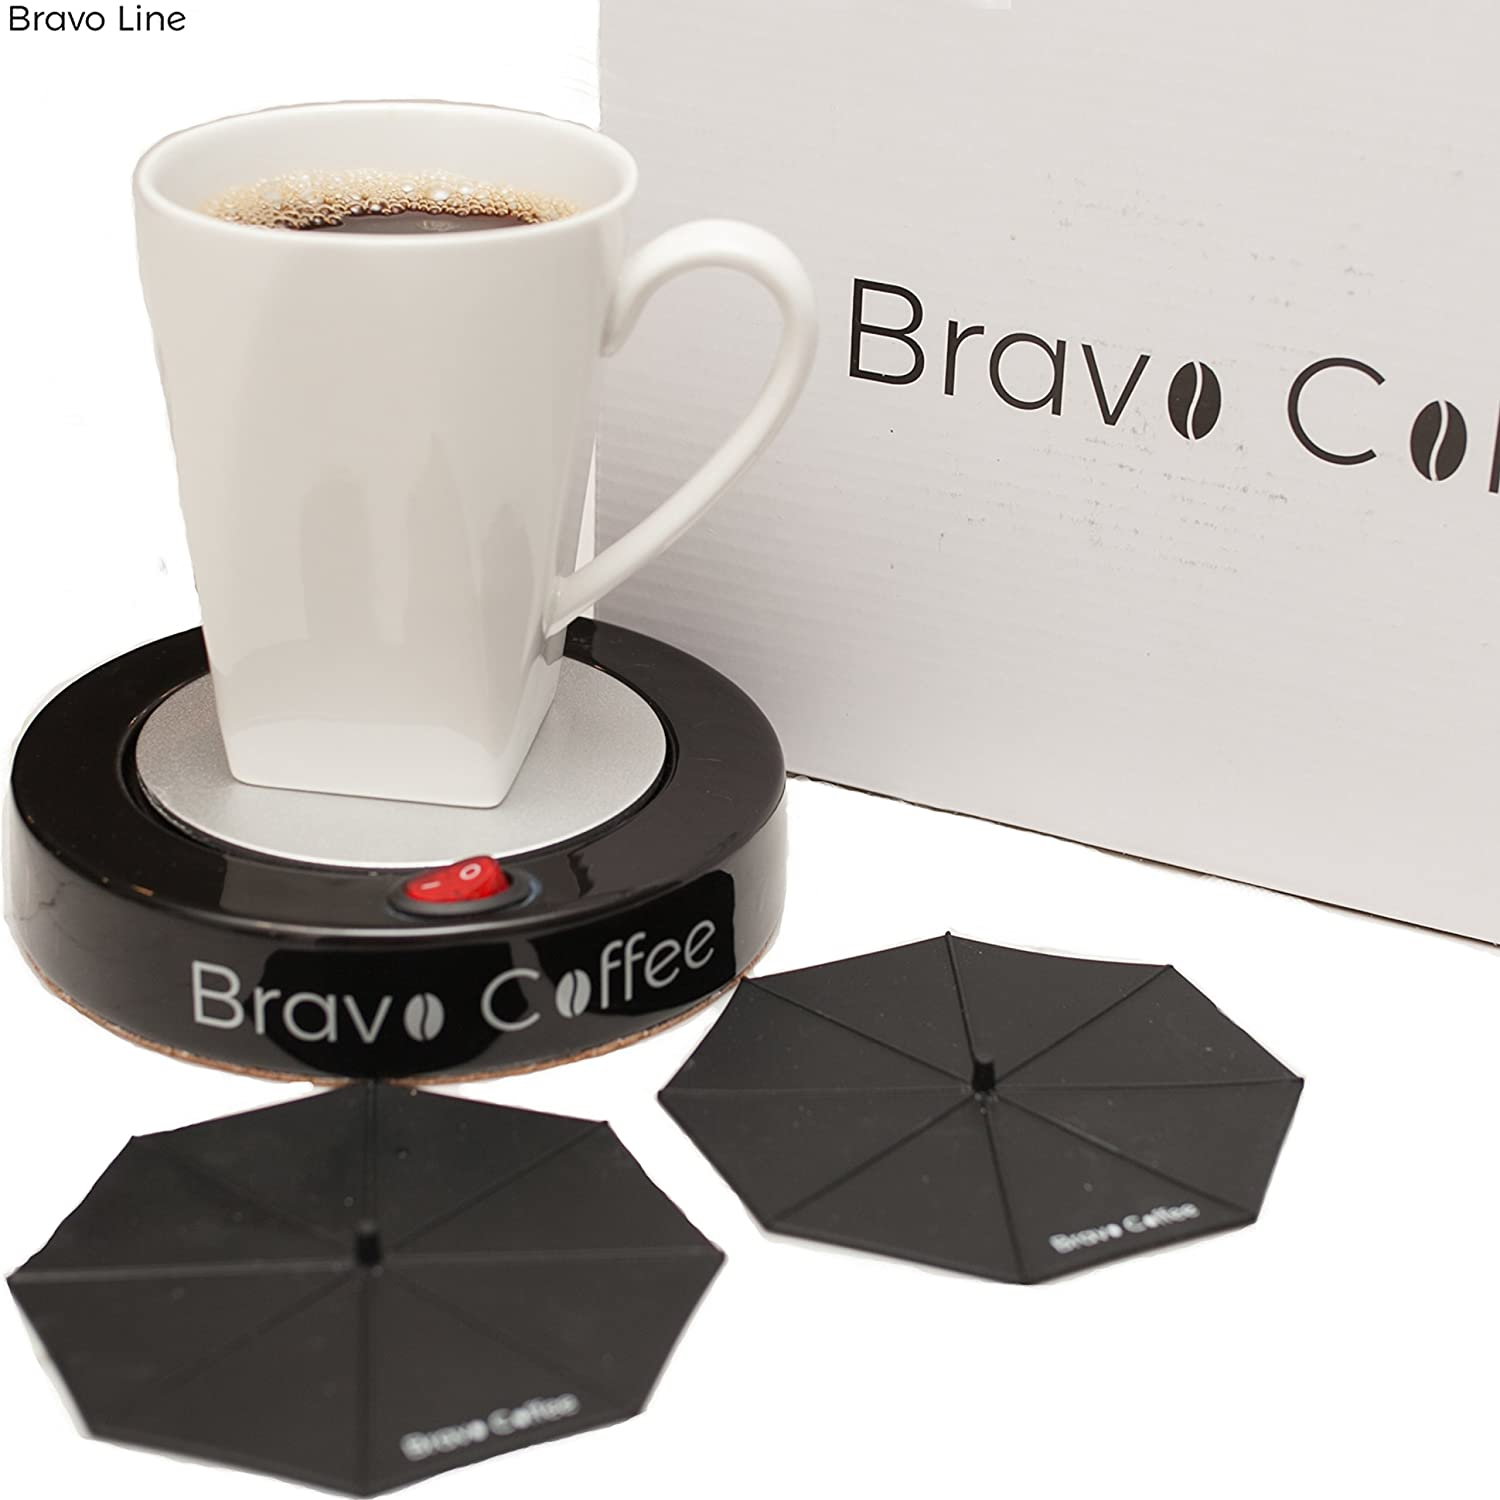 Electric Personal Coffee Mug & Beverage Warmer For Desk, 3.87 Diameter with 2 Bonus Drink Covers :: Large Heat Plate Fits All Cups and Mugs :: Automatic Shutoff for Safety by Bravo Line